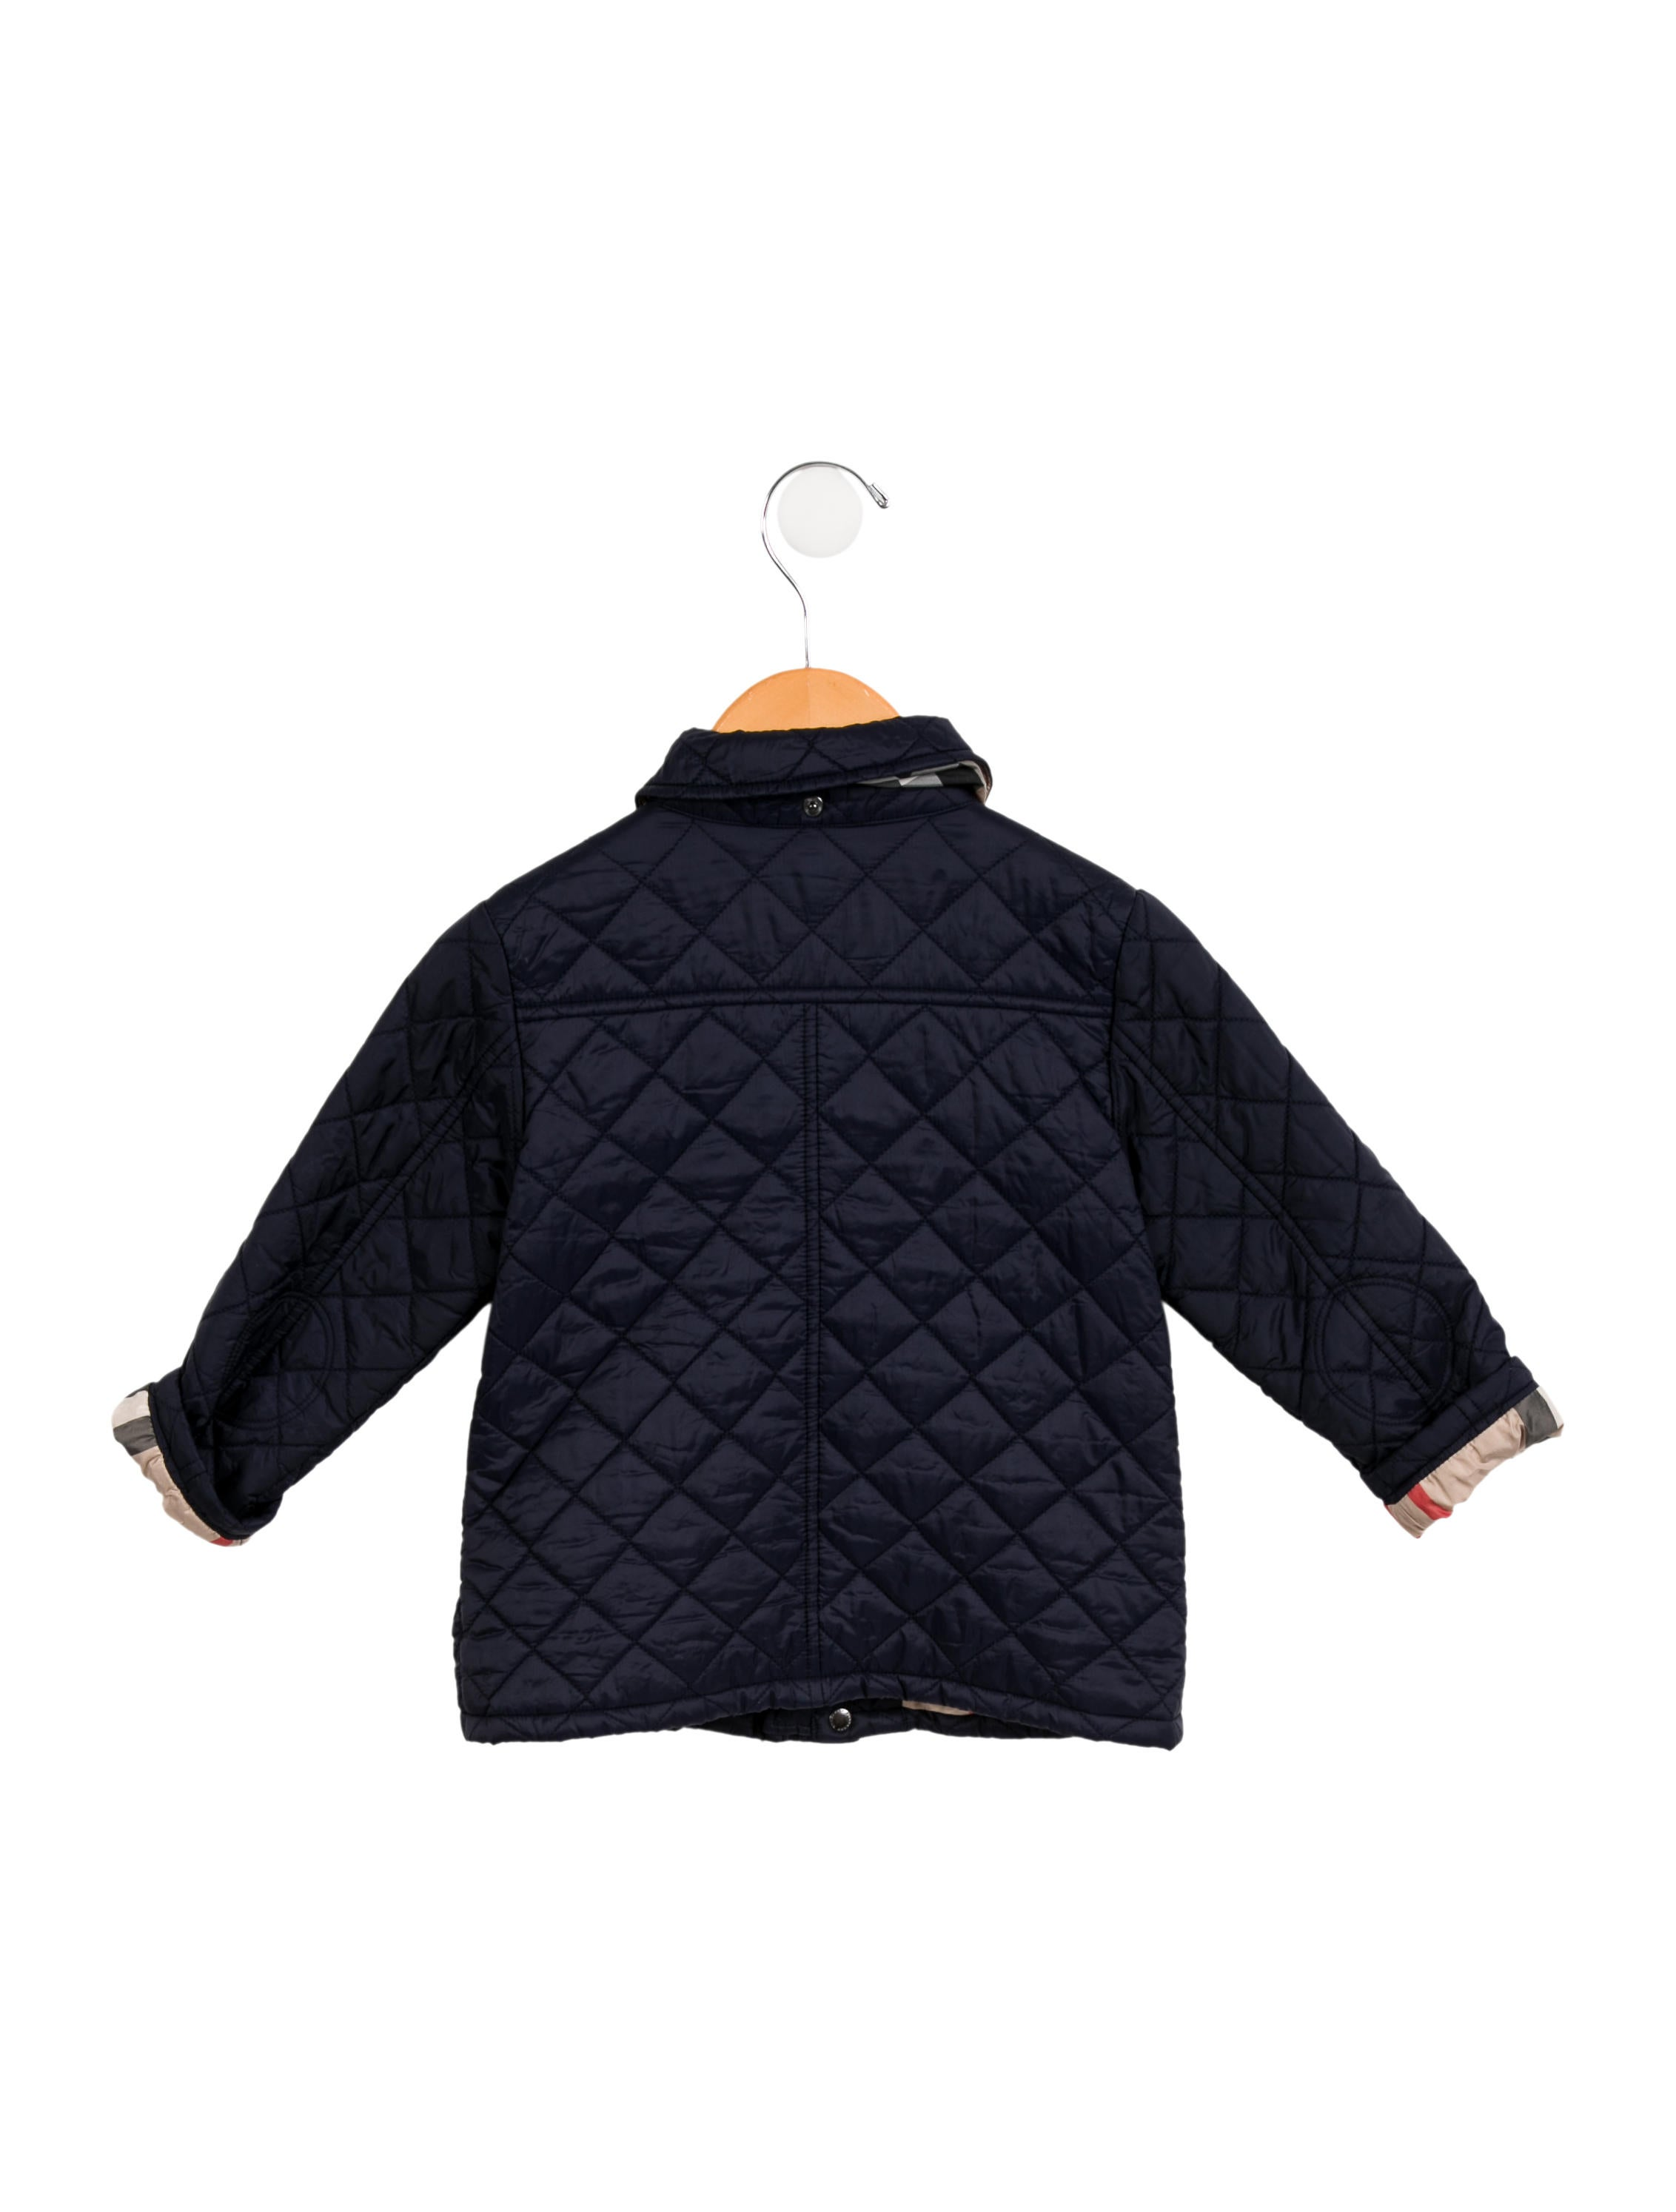 Burberry Boys Quilted Jacket Boys Bur88452 The Realreal